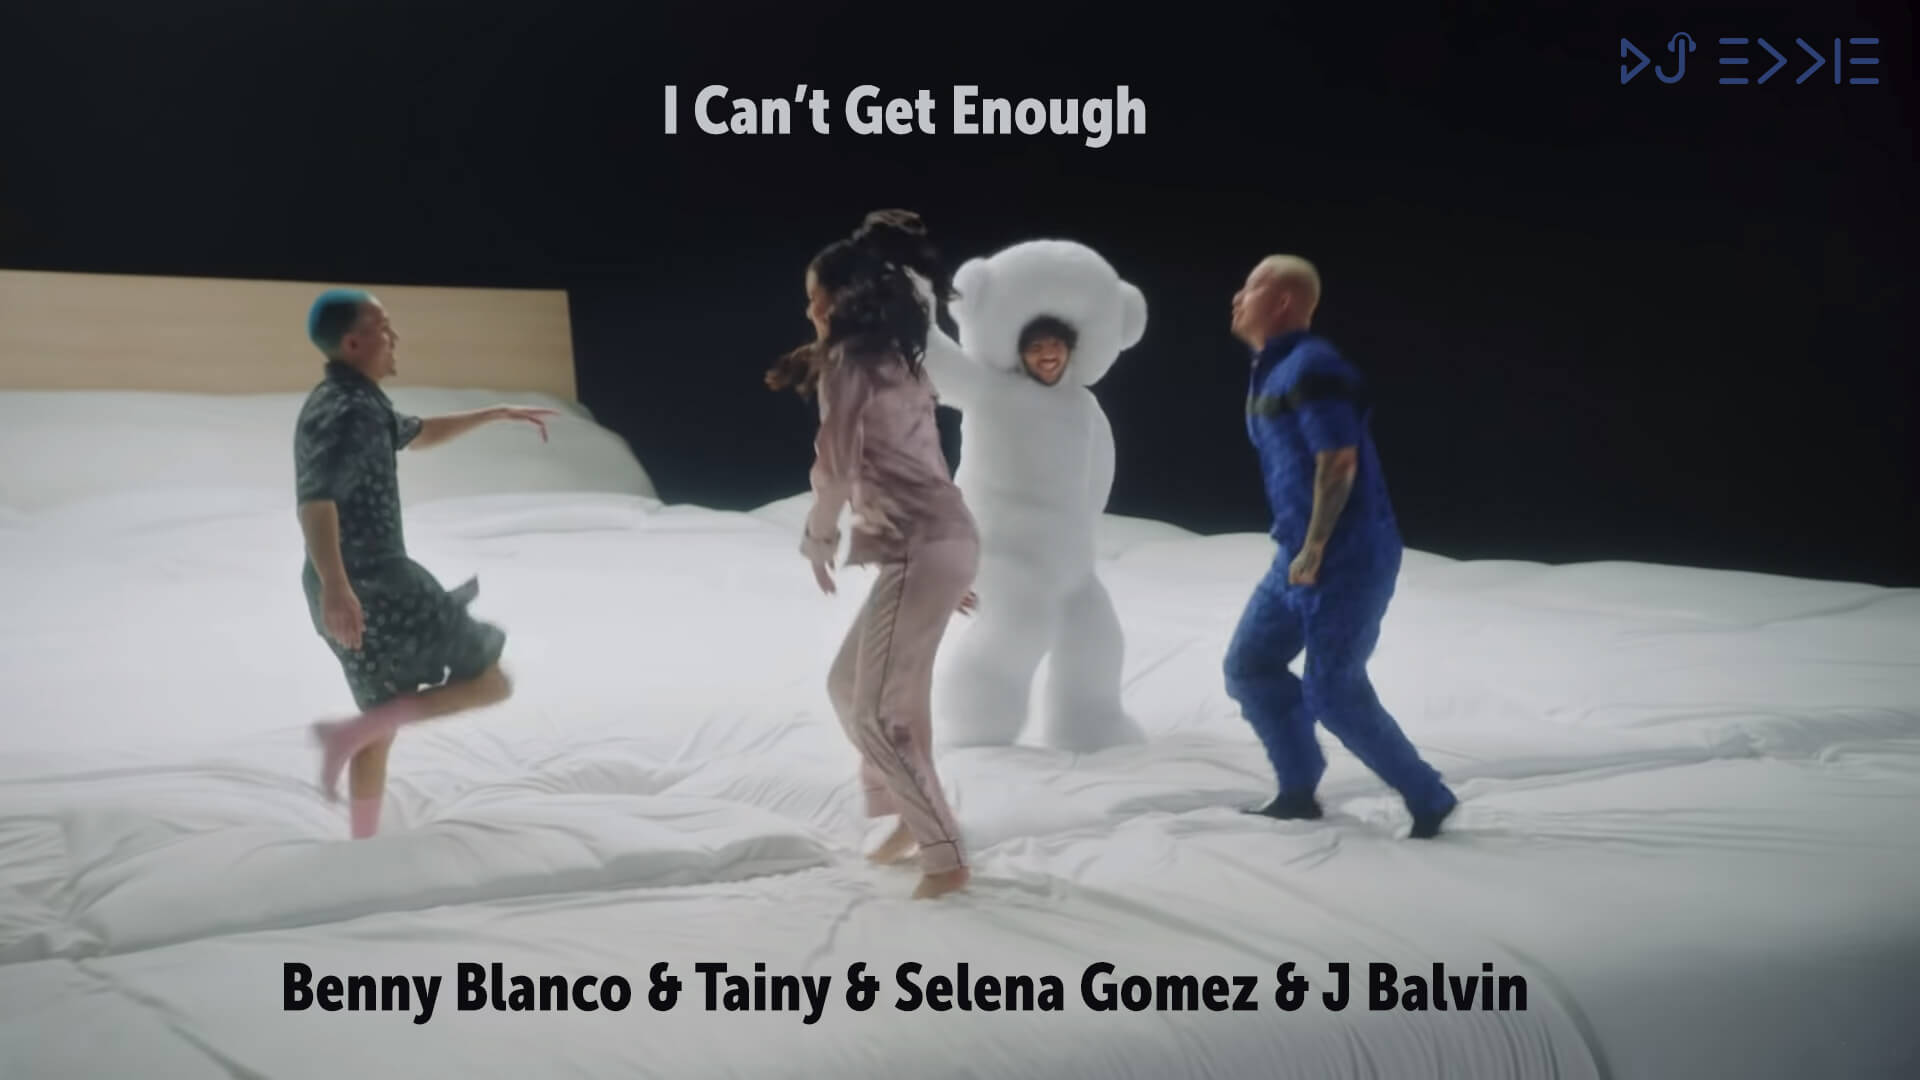 Benny Blanco & Tainy & Selena Gomez & J Balvin - I Can't Get Enough